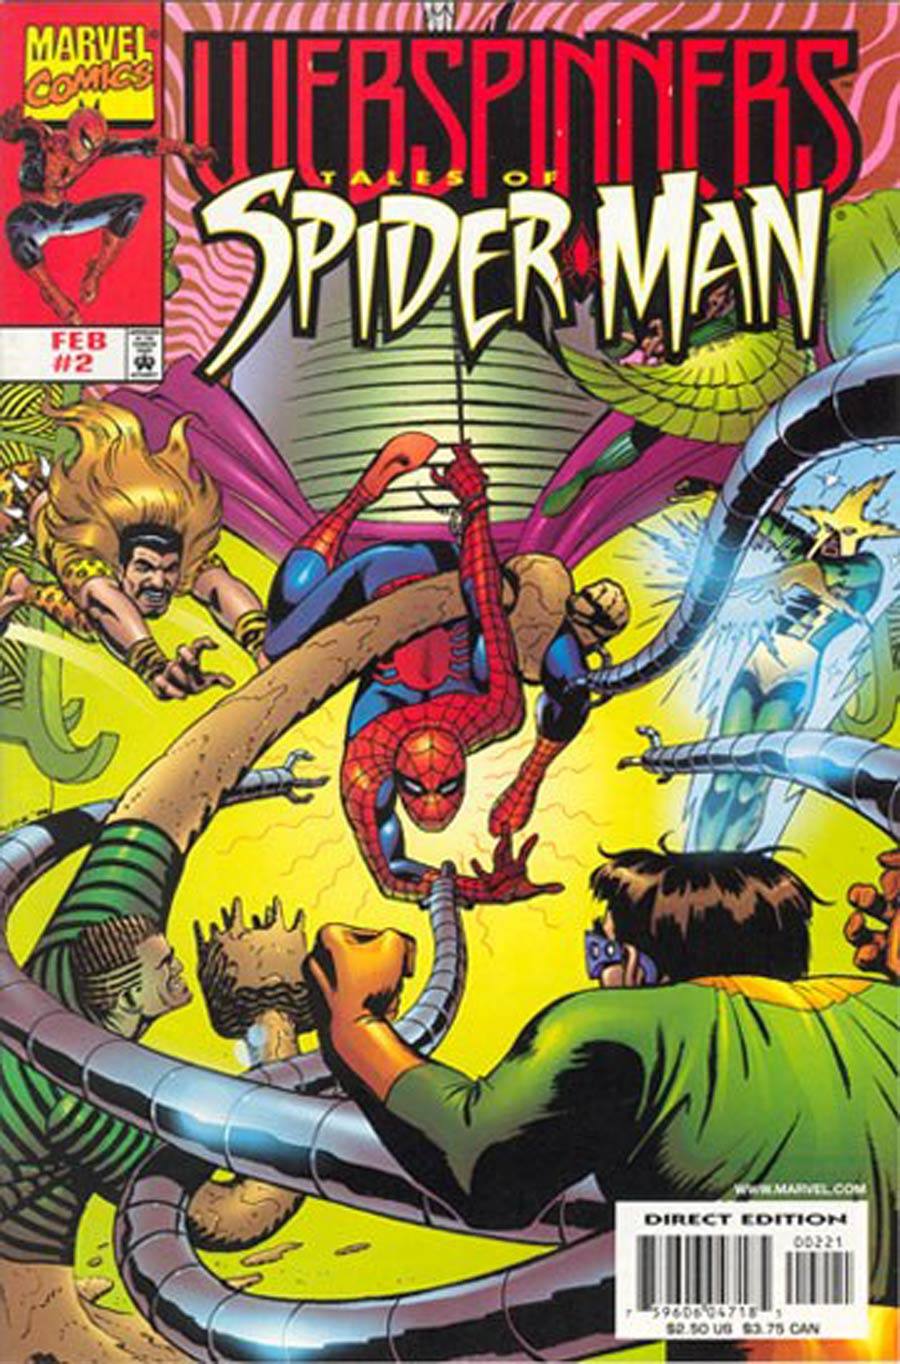 Webspinners Tales Of Spider-Man #2 Cover B